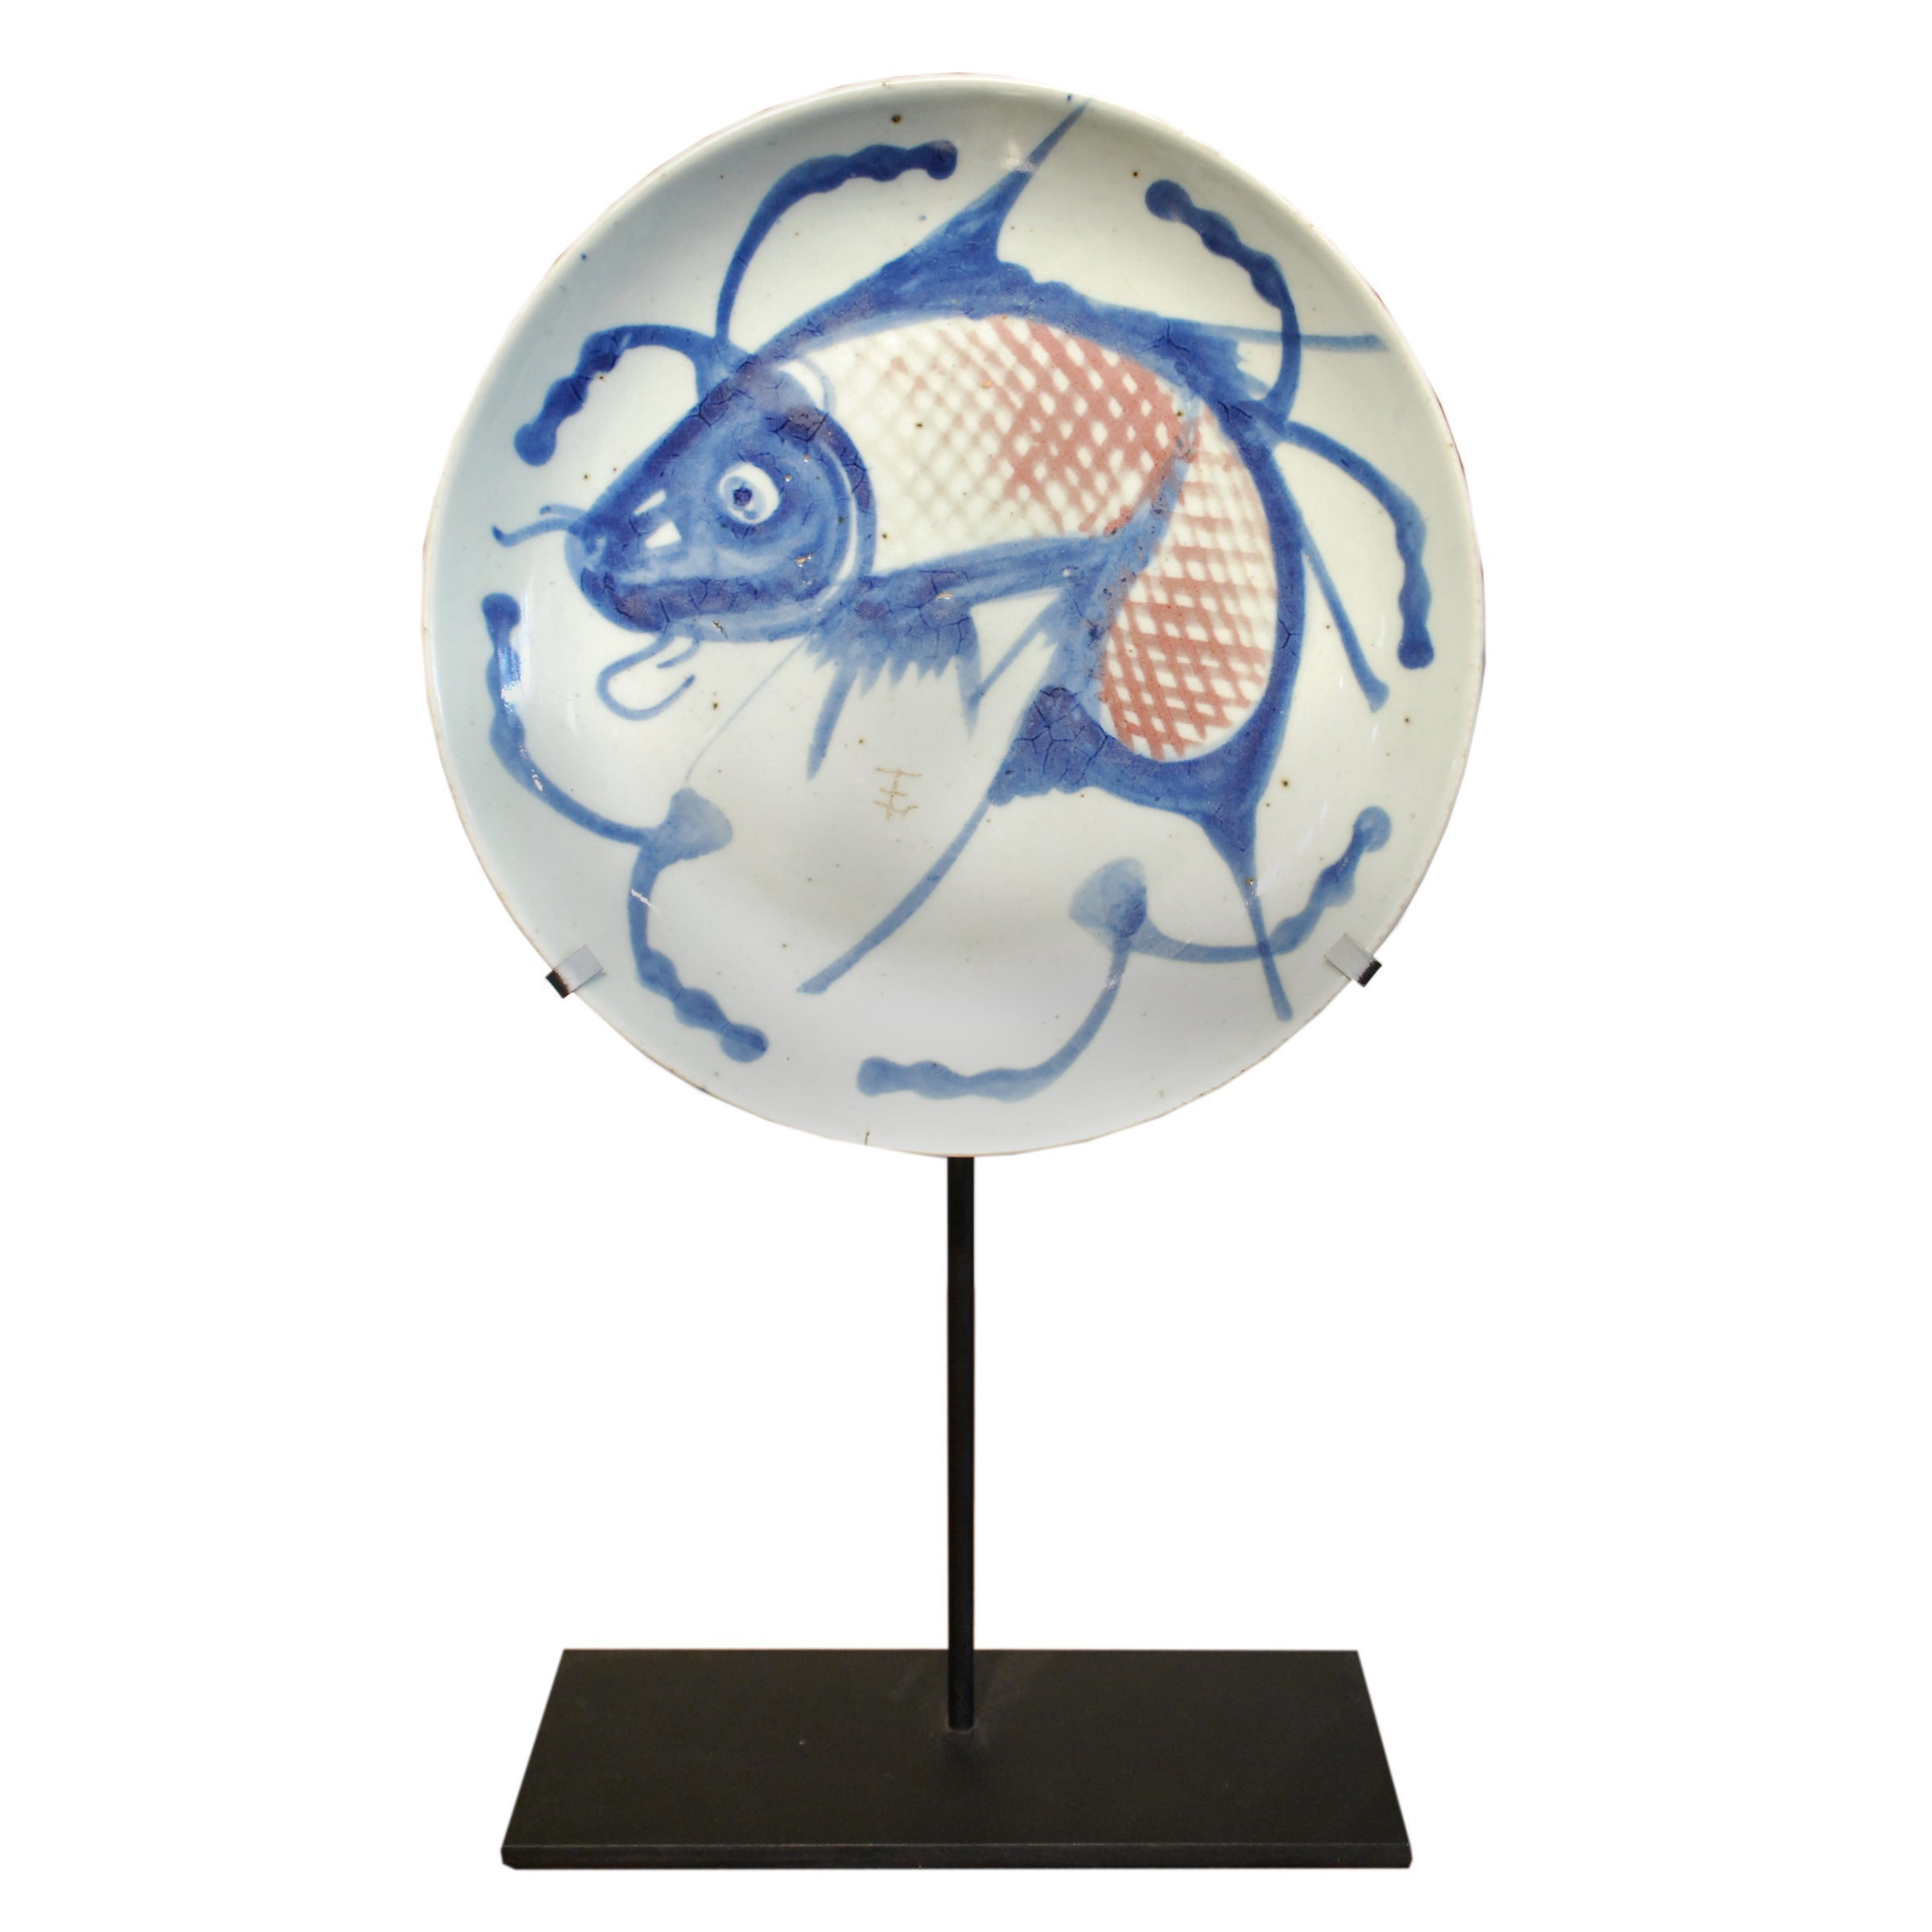 Chinese Blue and White Fish Plate, c. 1850